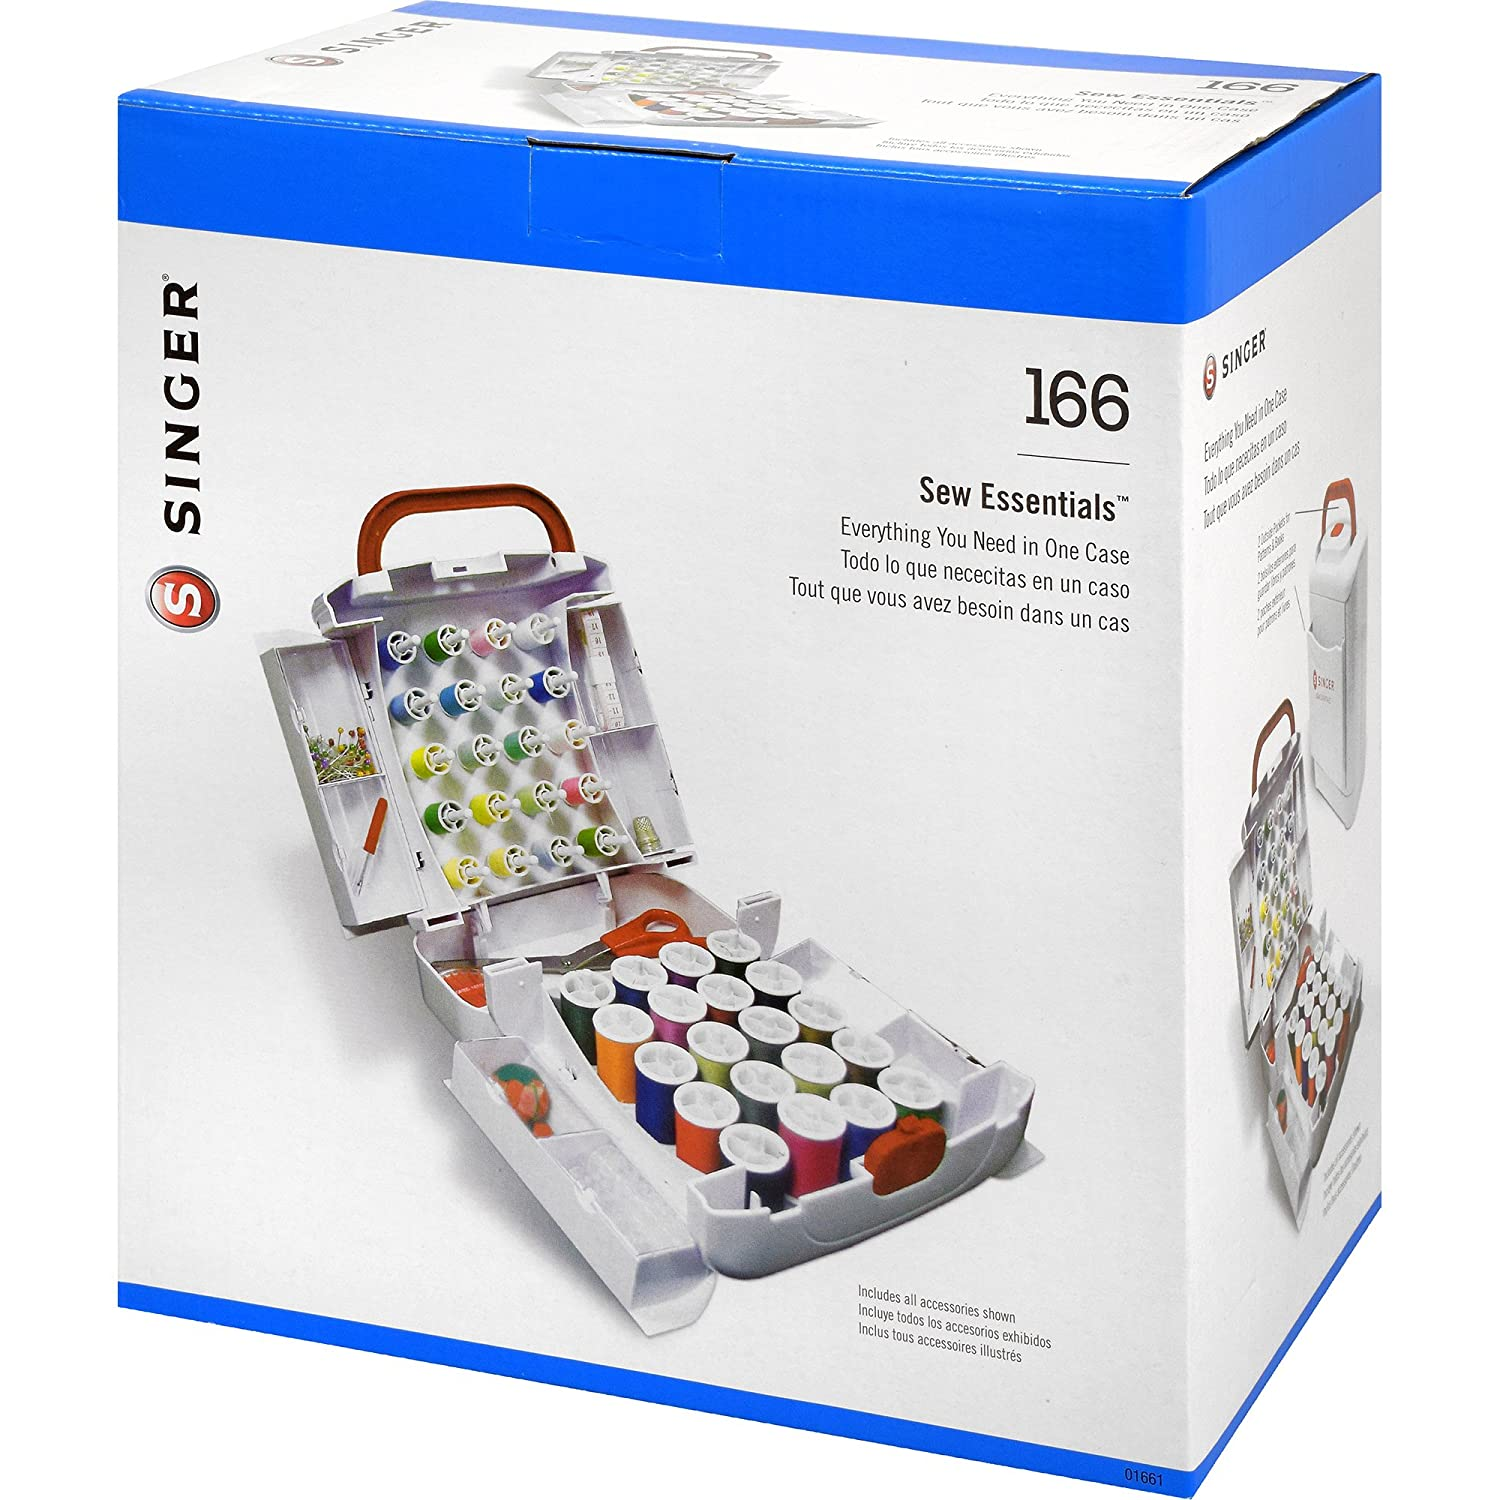 Singer 166-piece 10 x 8,5 x 15,2 cm Sew Essentials sistema de almacenamiento, color blanco: Amazon.es: Hogar